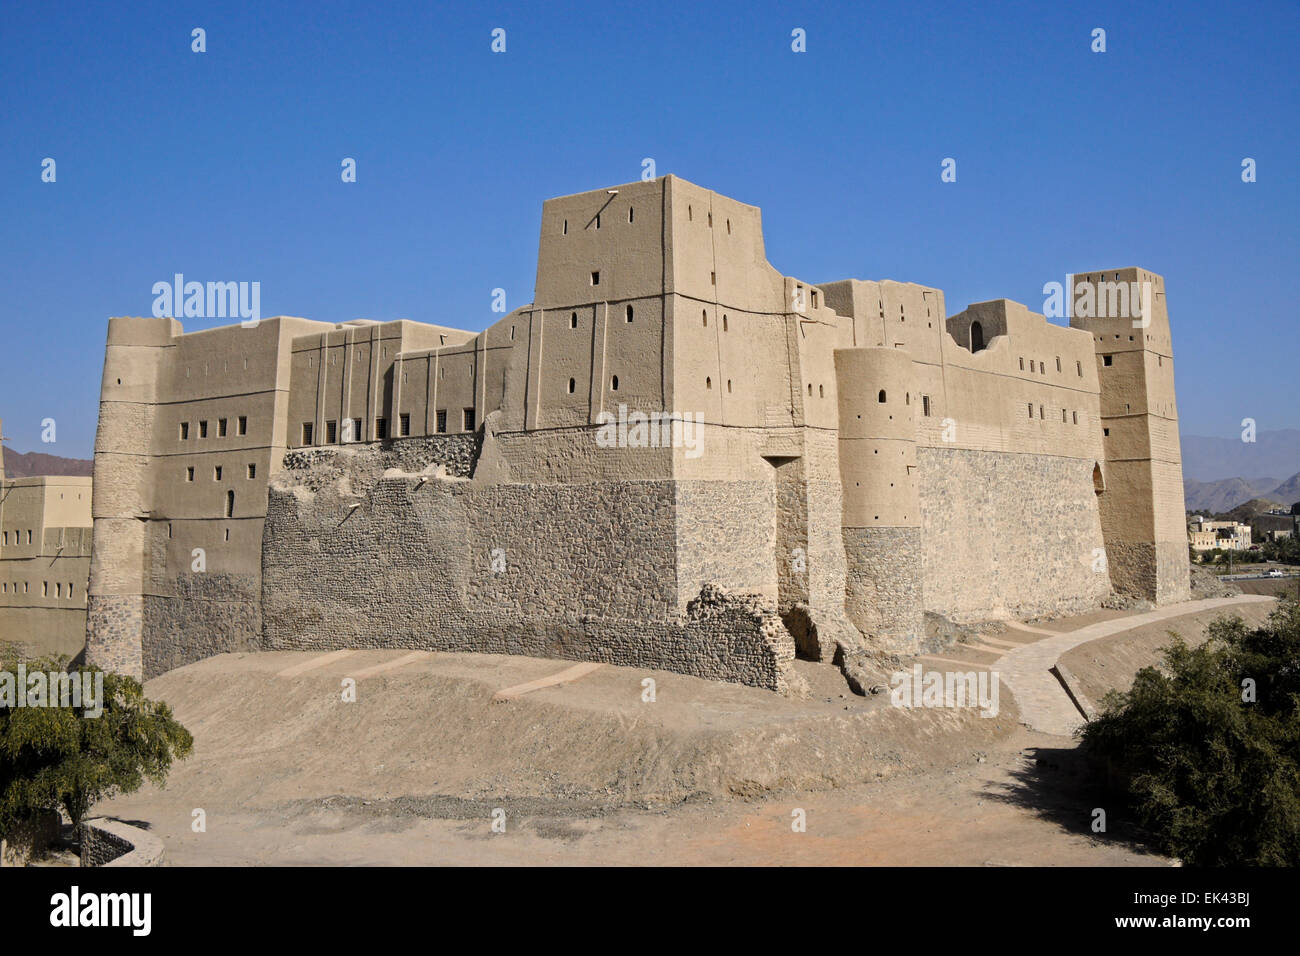 Bahla (Bahala) Fort, Sultanate of Oman - Stock Image